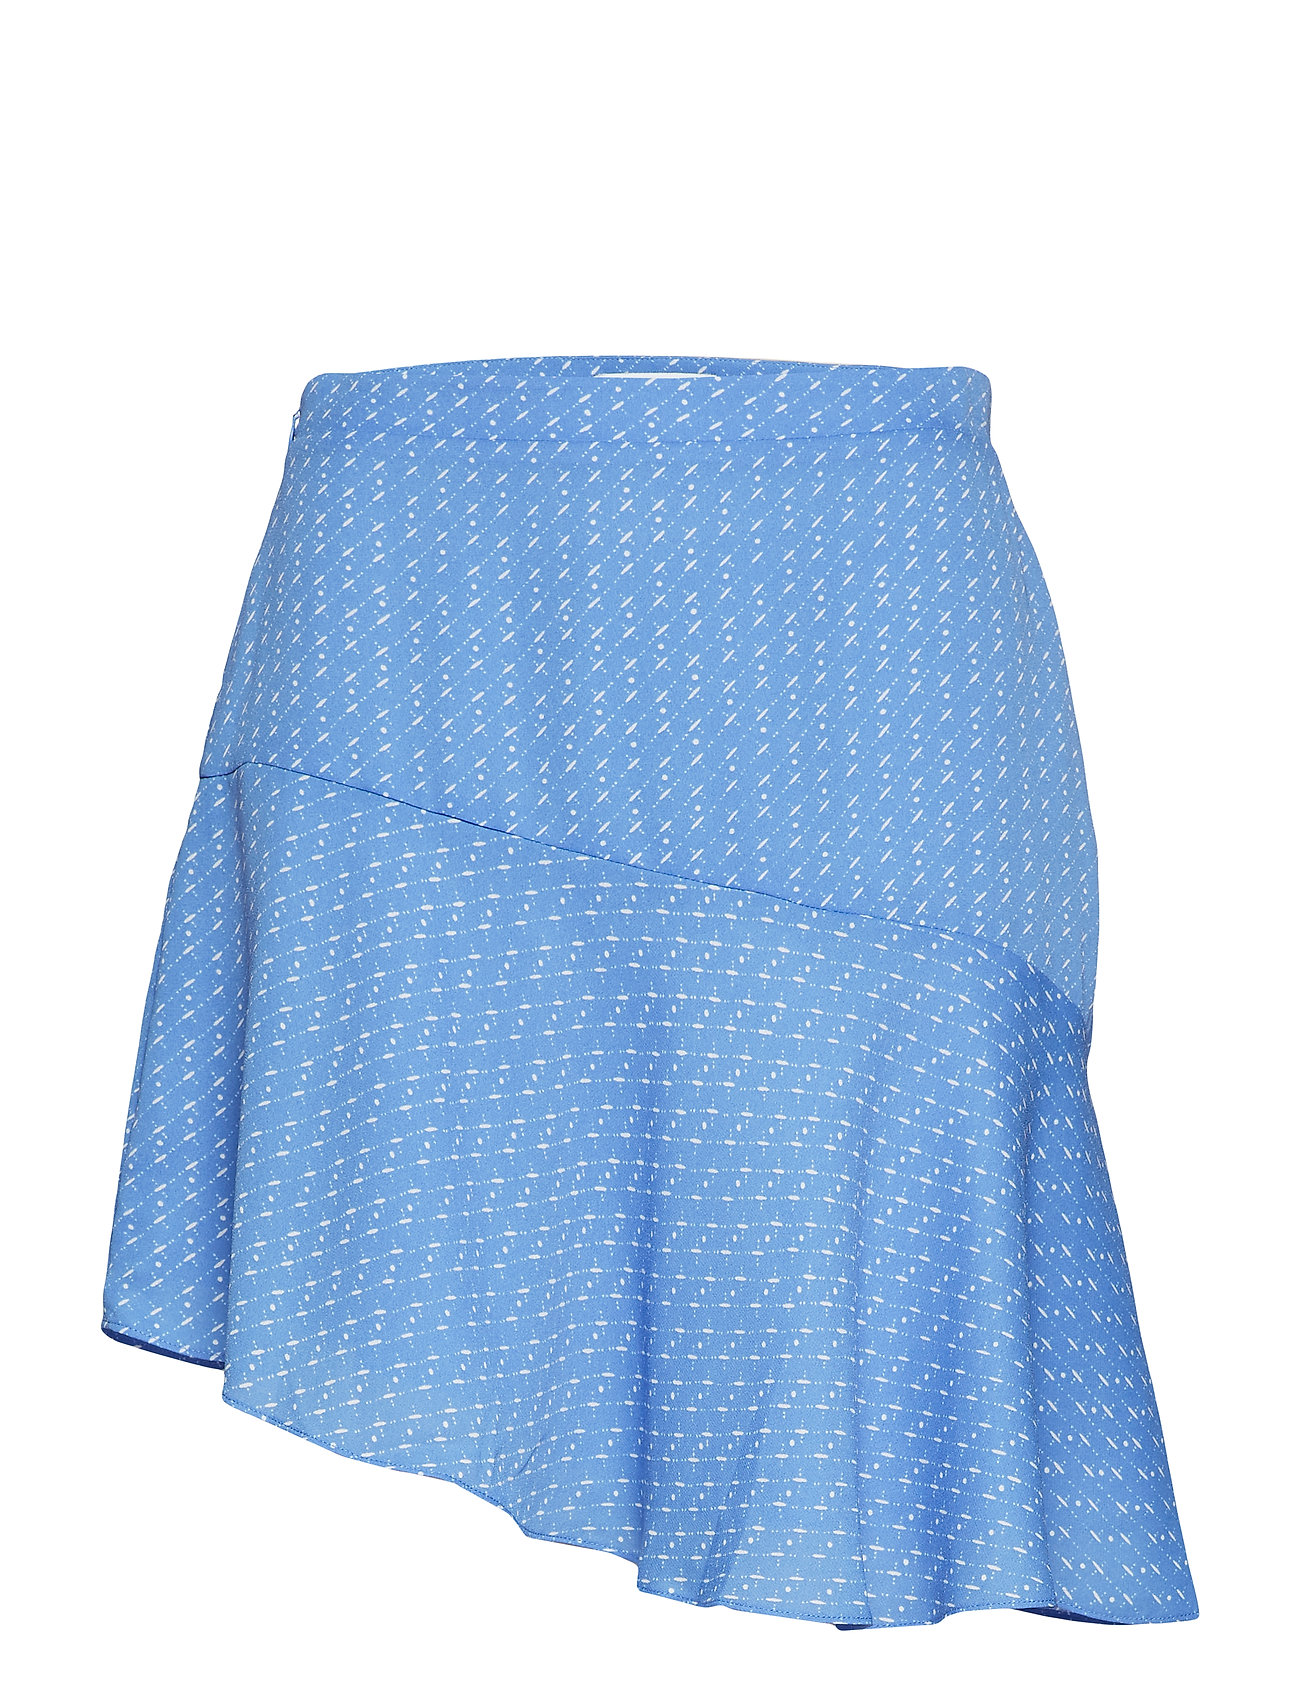 Samsøe & Samsøe Lantana short skirt aop 6891 - BLUE STARRY